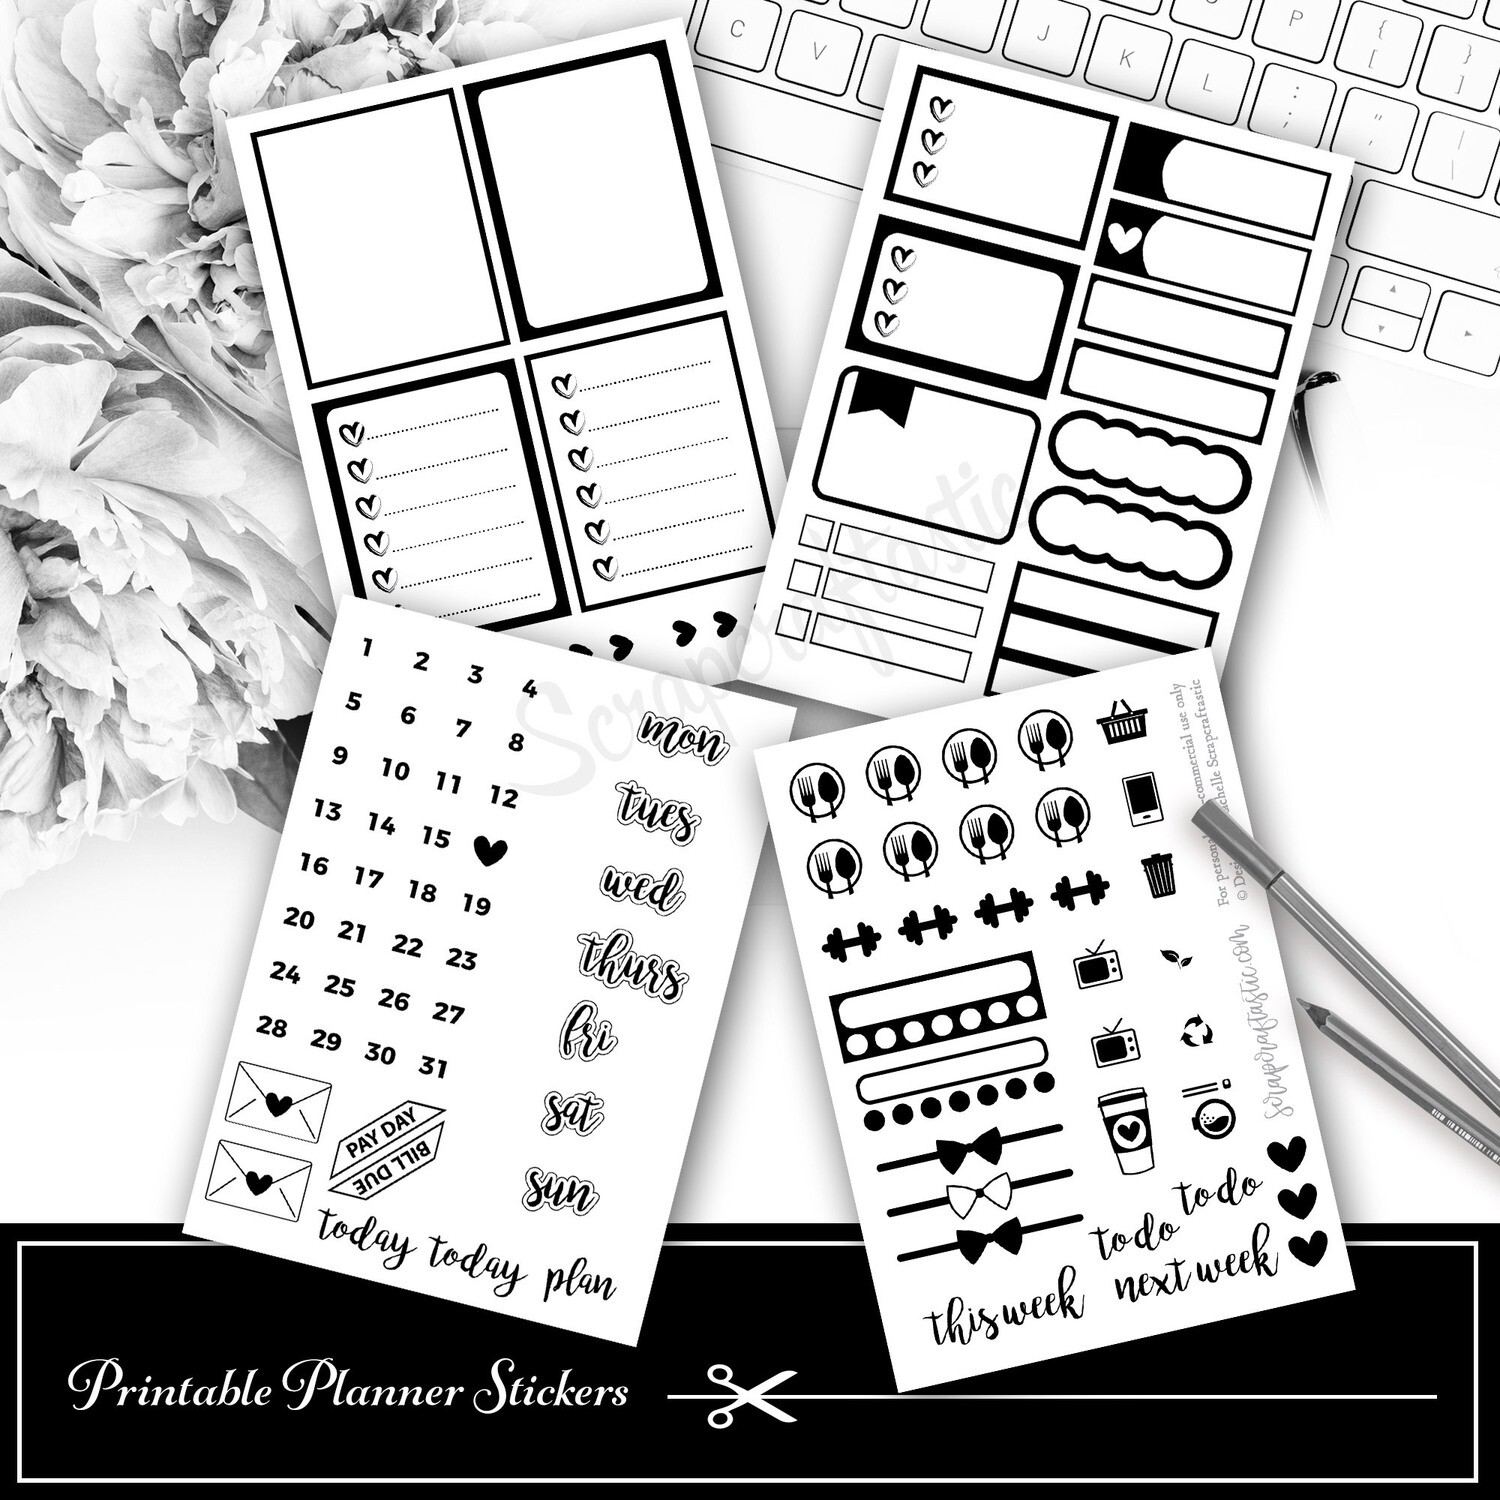 FOIL READY Mini Kit Printable Planner Stickers for Digital Cutting